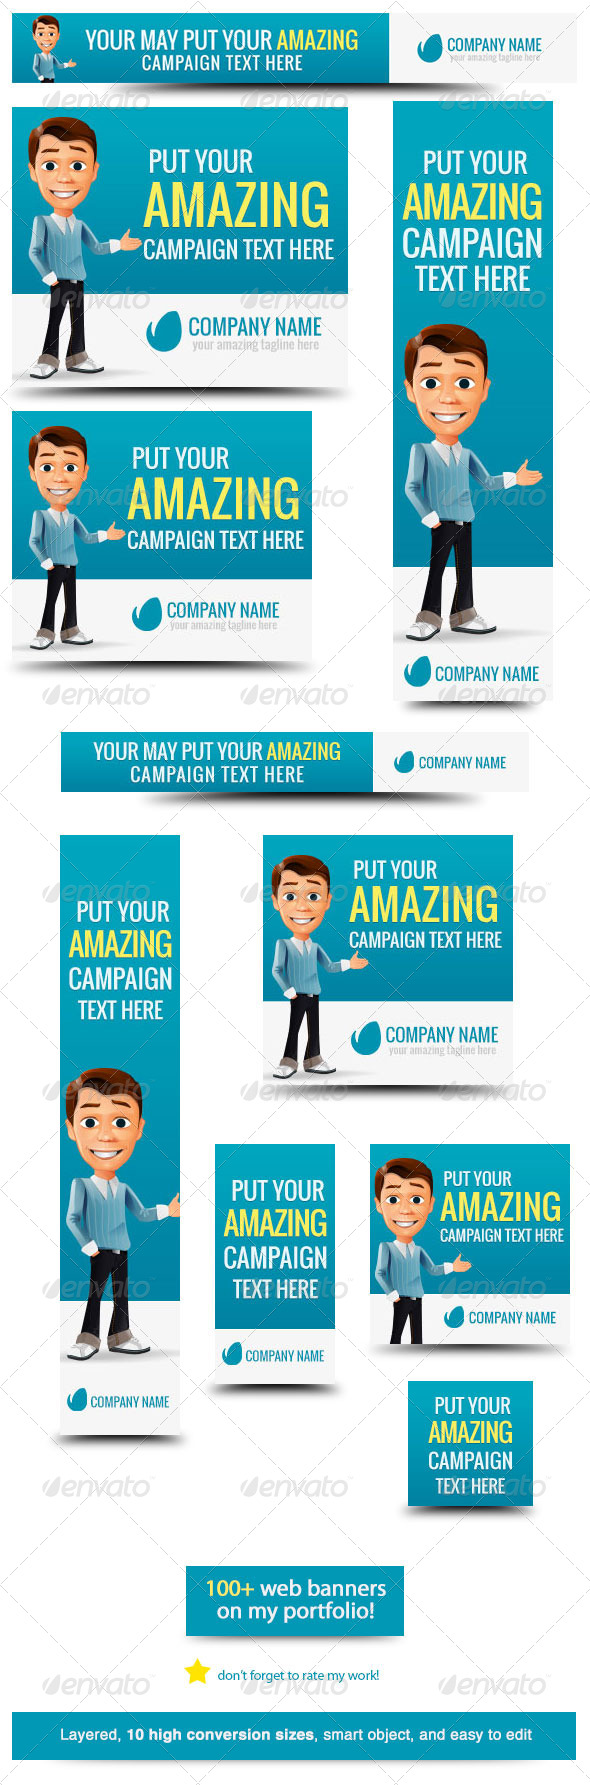 Business Cartoon Web Banner - Banners & Ads Web Elements